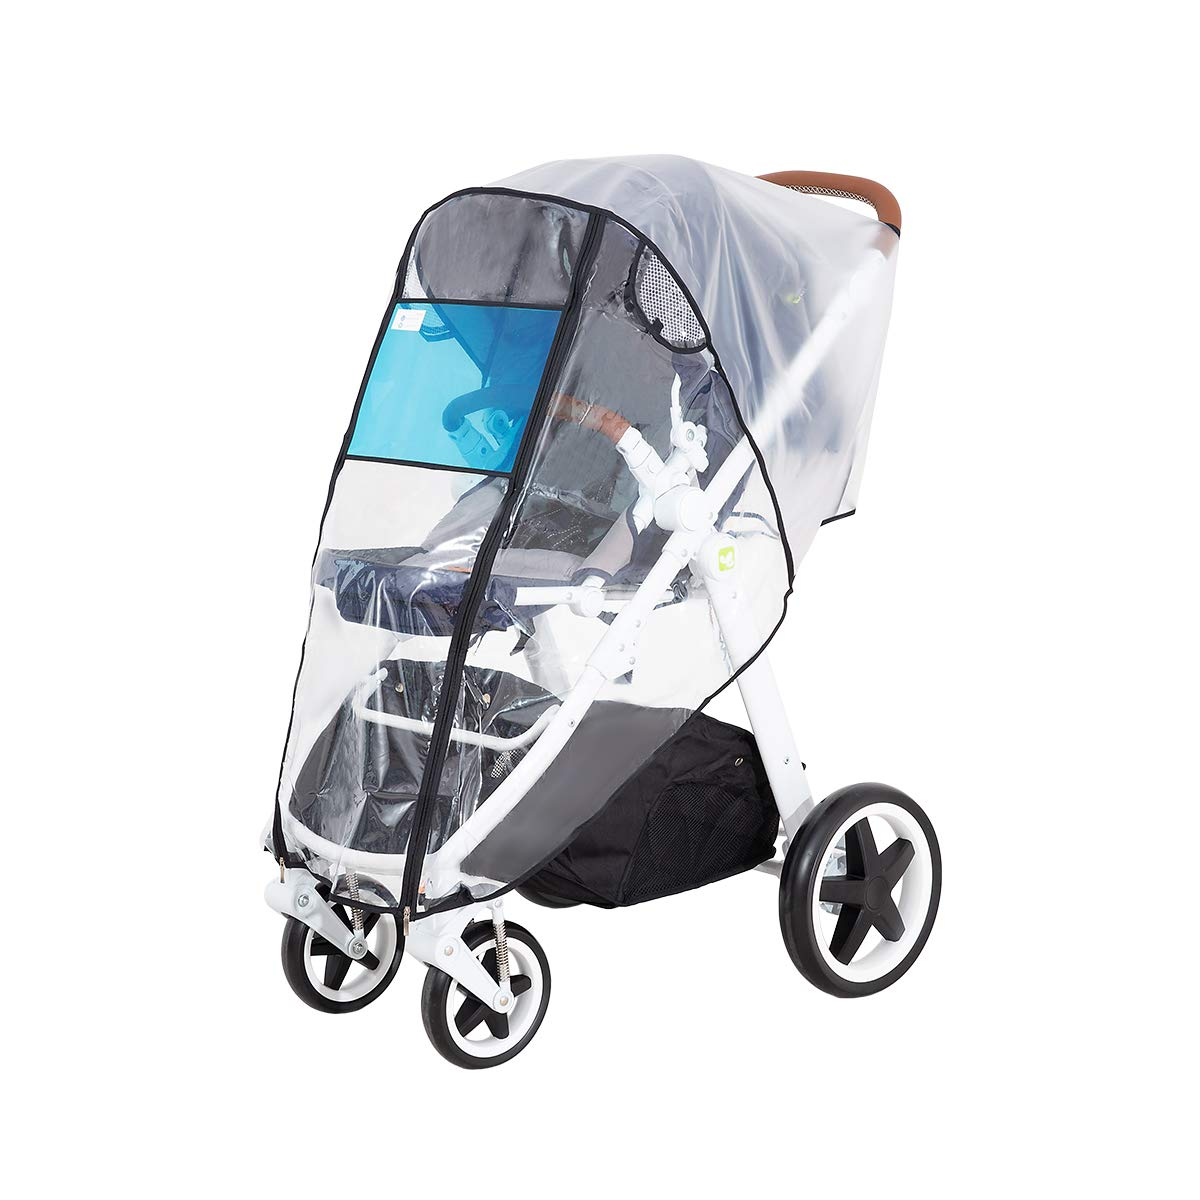 Hrzeem Stroller Rain Cover Stroller Cover Universal Baby Stroller Weather Shield with Storage Pouch EVA Clear Zip Front Opening Waterproof Windproof Protection Easy to Install for Outdoor Use (Black) by Hrzeem